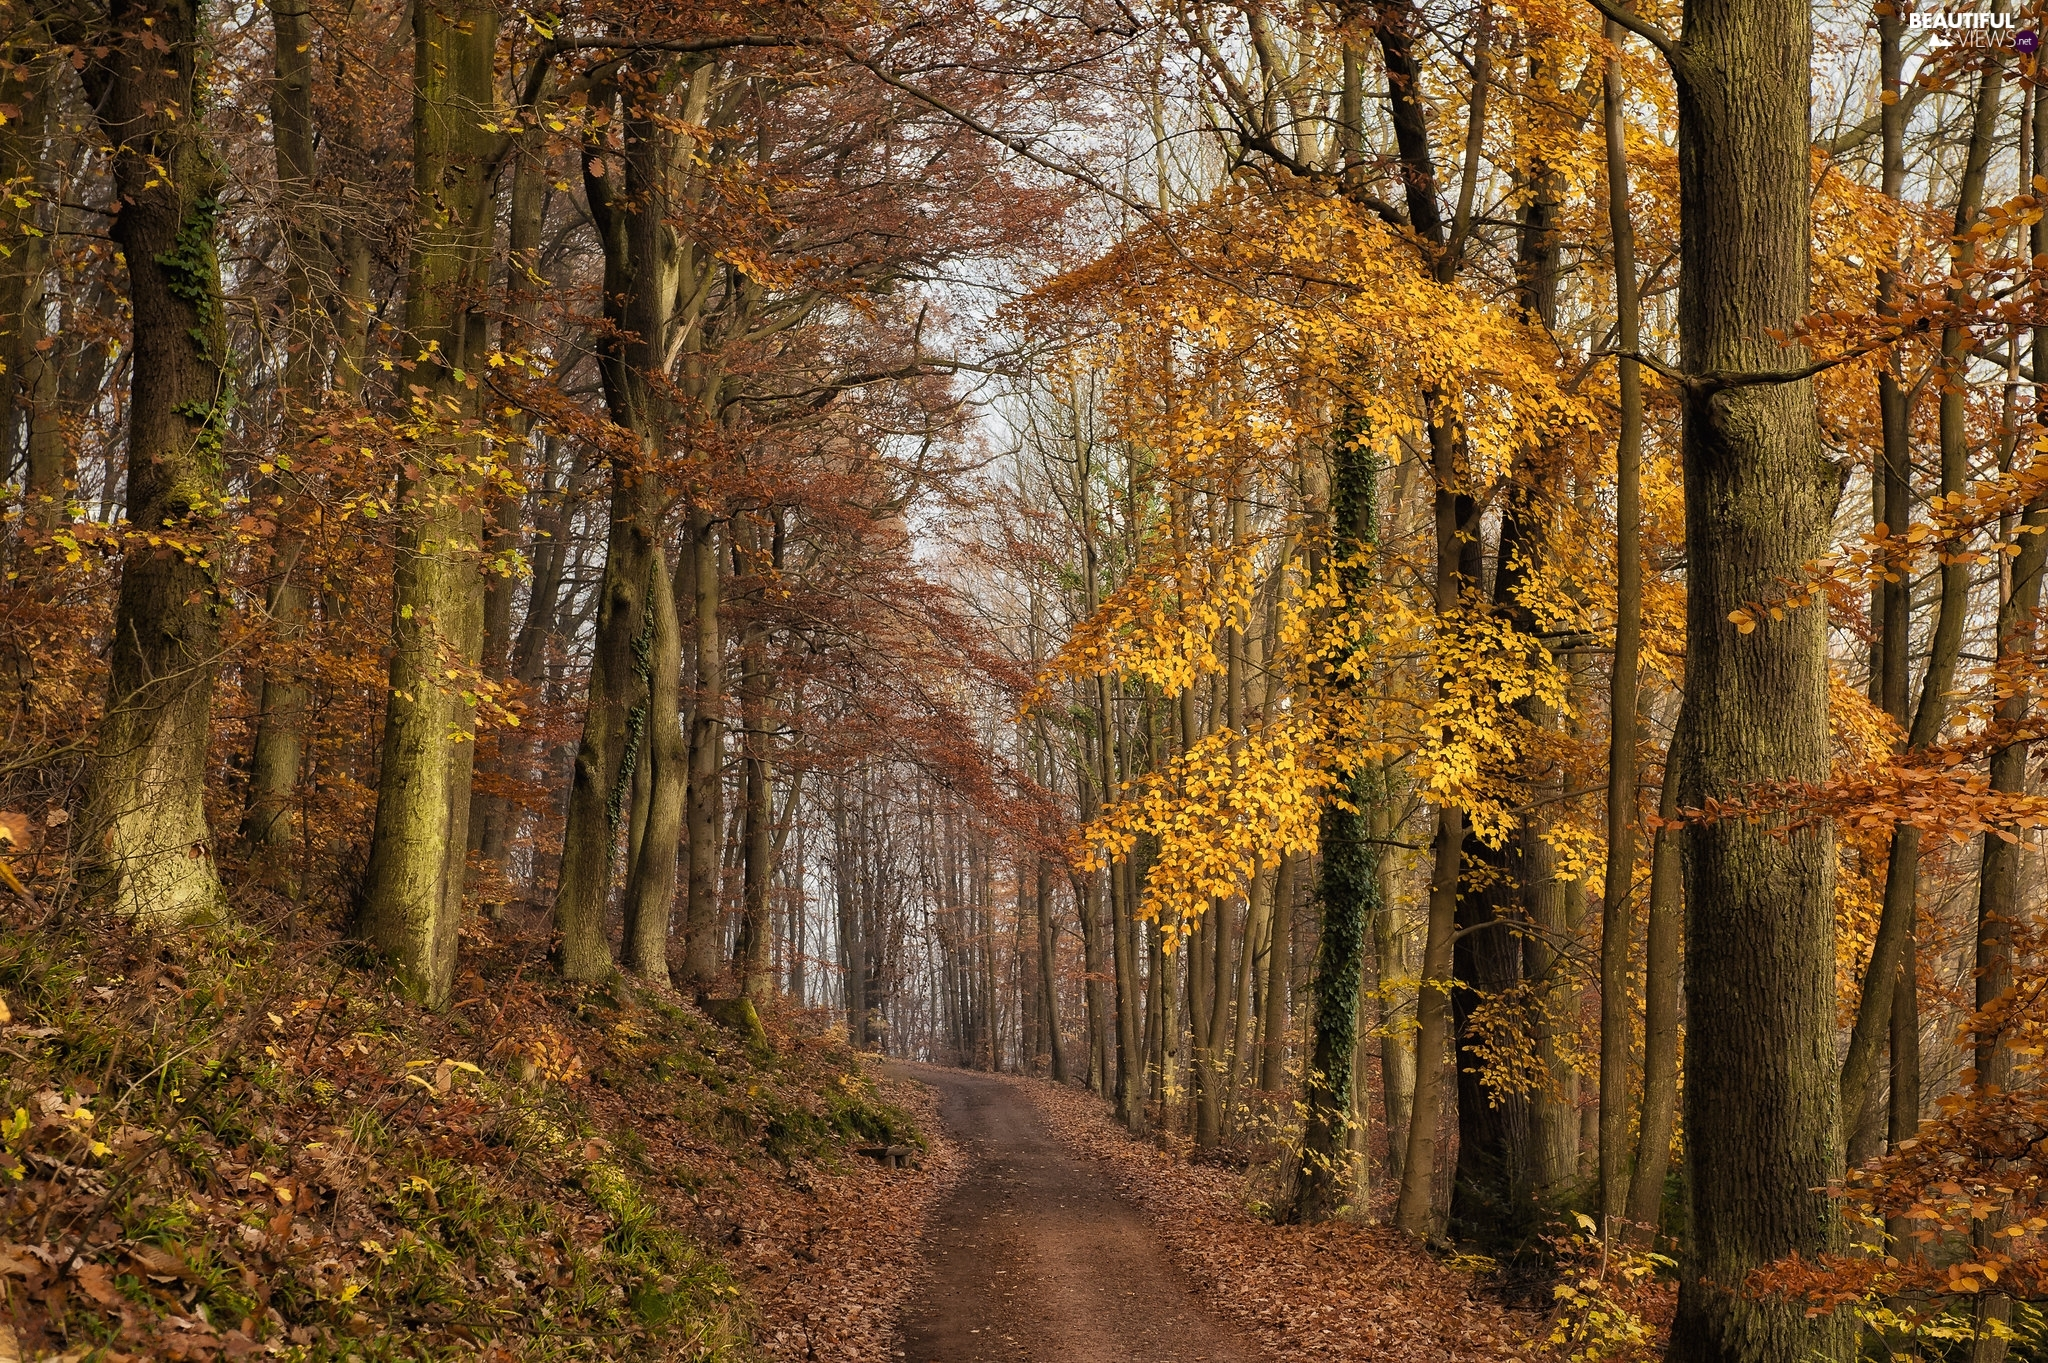 trees, Way, Leaf, Path, forest, viewes, autumn